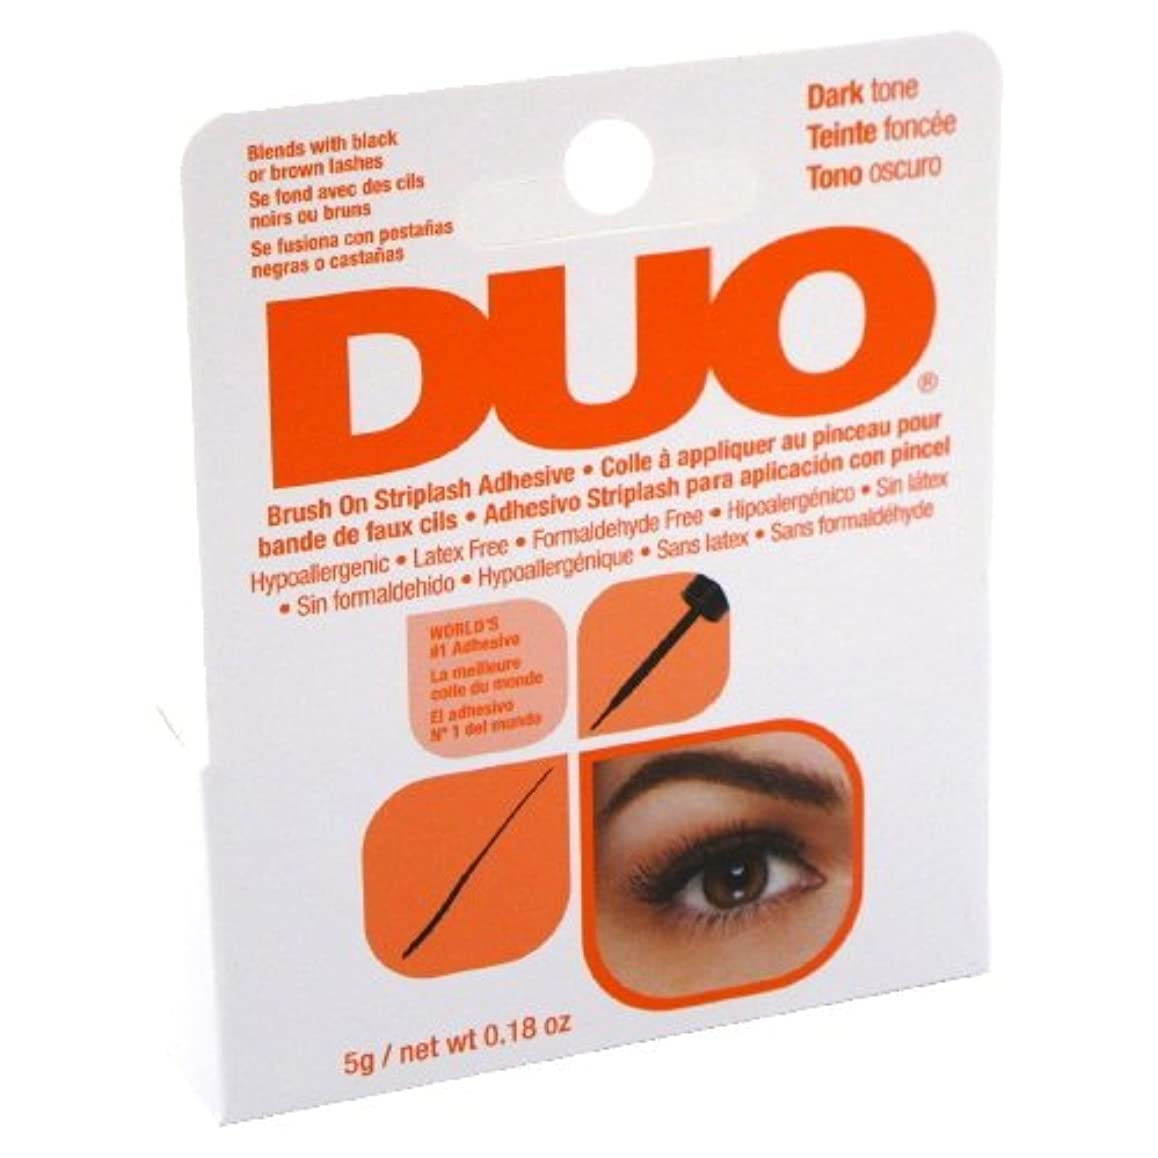 博物館余分な道路(6 Pack) DUO Brush On Striplash Adhesive - Dark Tone (並行輸入品)